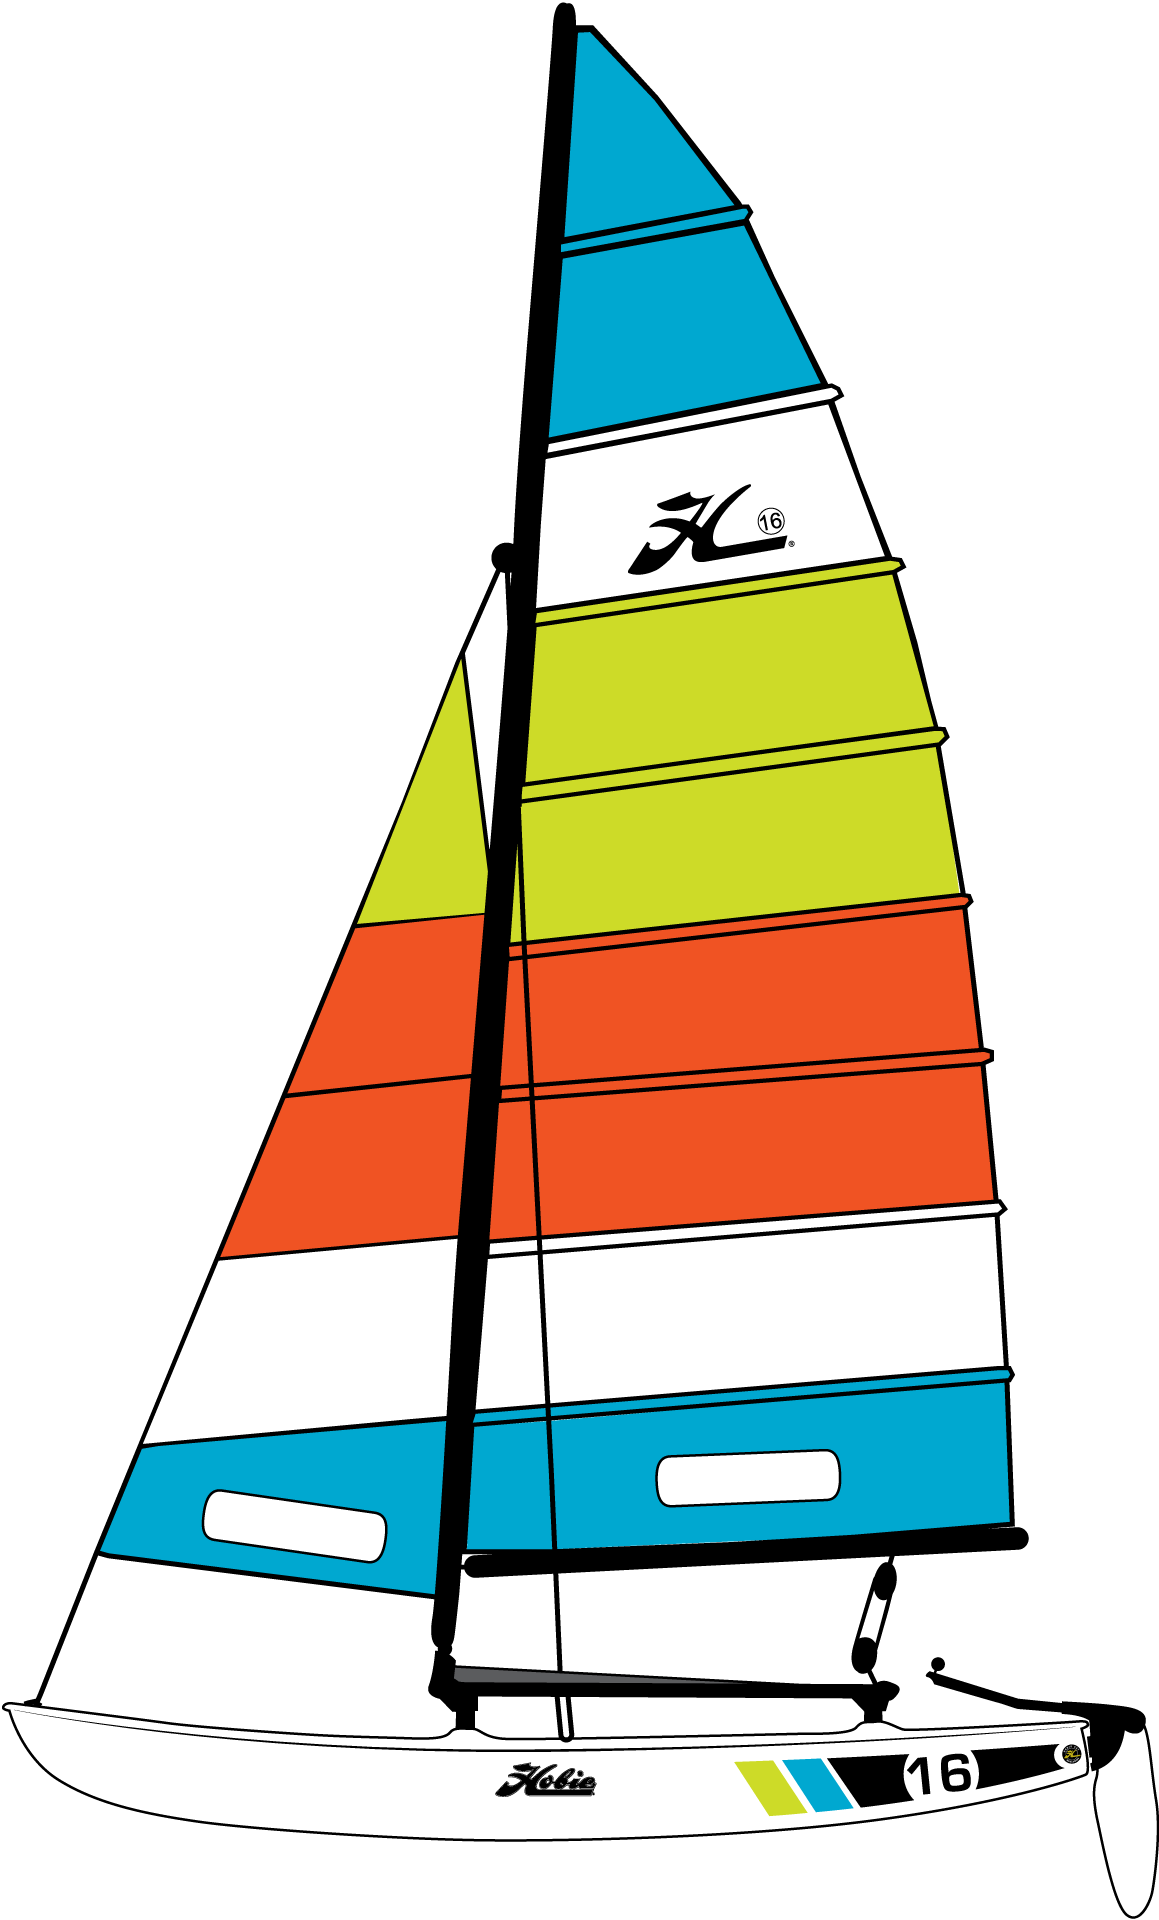 Sailing clipart catamaran #10